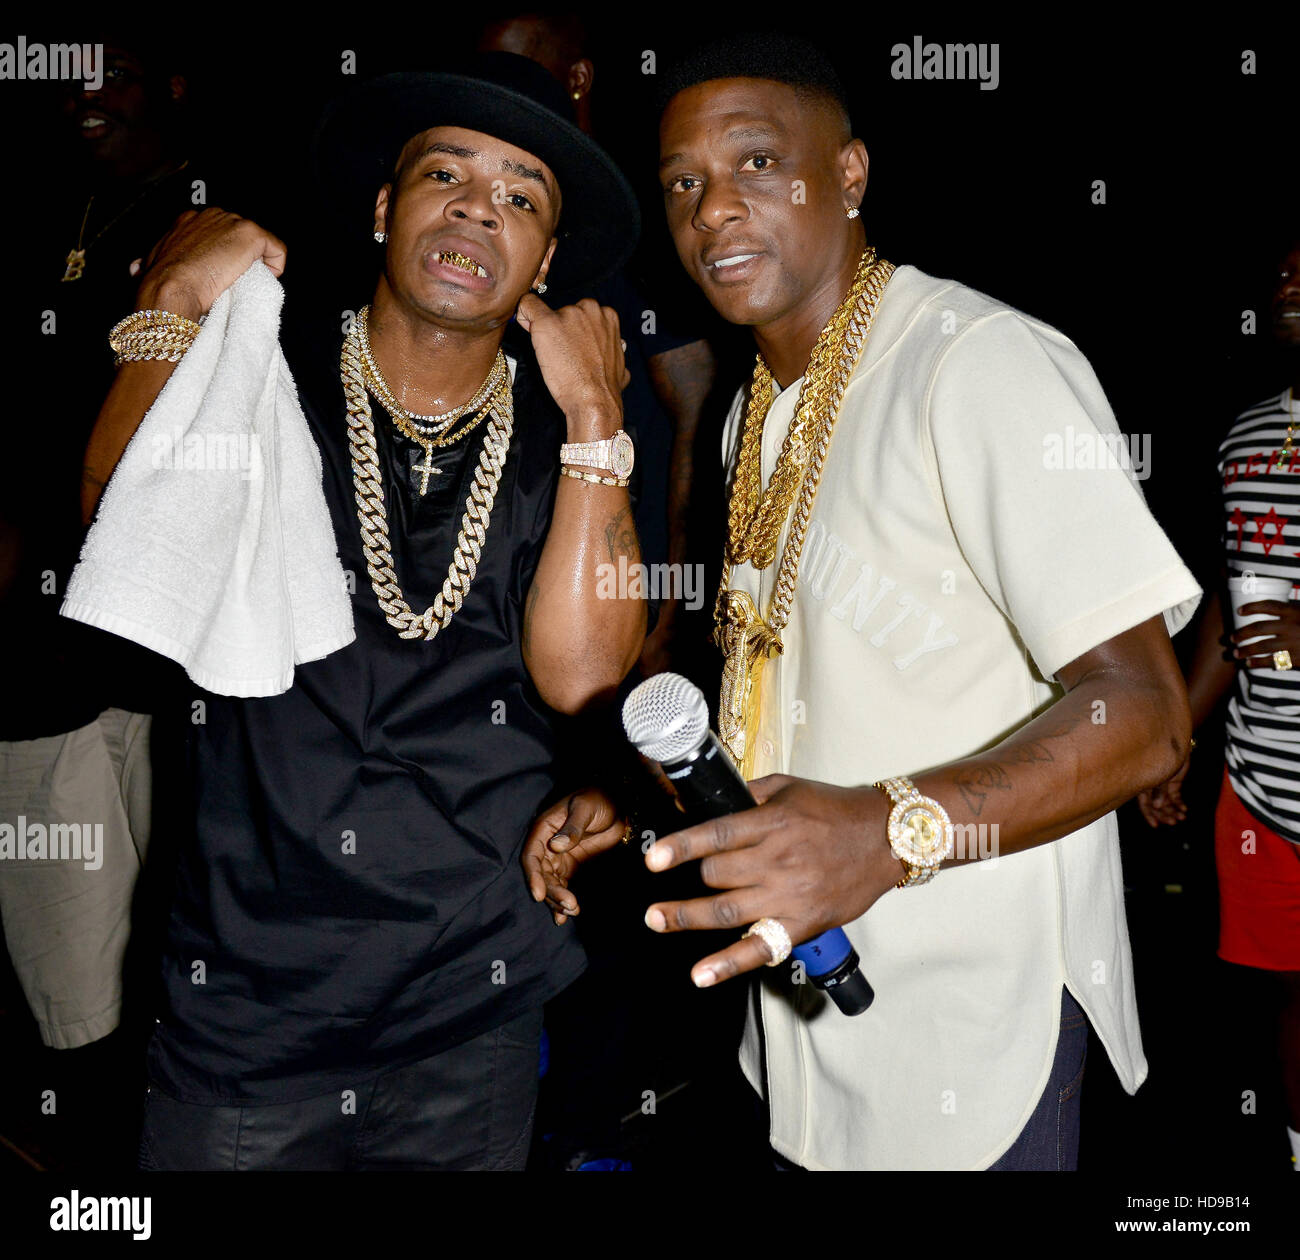 Lil' Boosie and Plies Kings backstage during the Kings of the Streets Tour at the James L. Knight Center  Featuring: - Stock Image